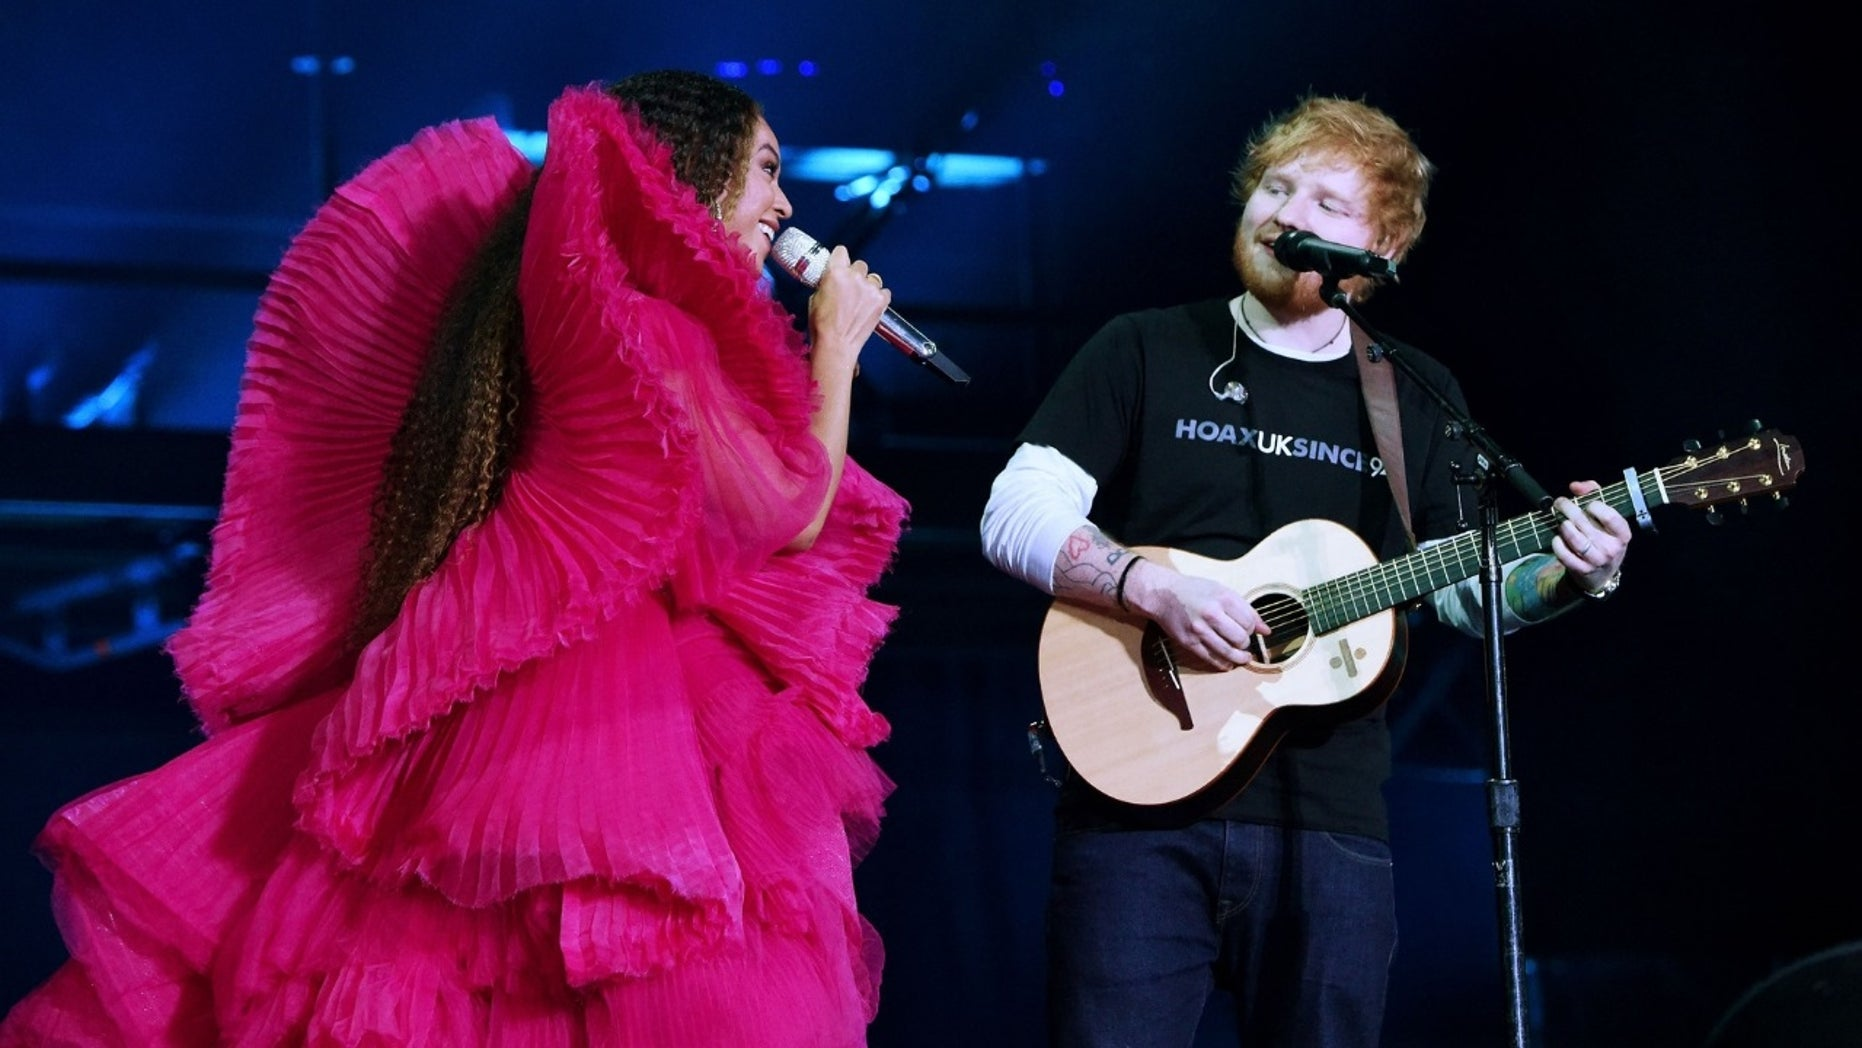 Beyoncé and Ed Sheeran performing together at the Global Citizen Festival in Johannesburg, South Africa, on Sunday, Dec. 2, 2018.